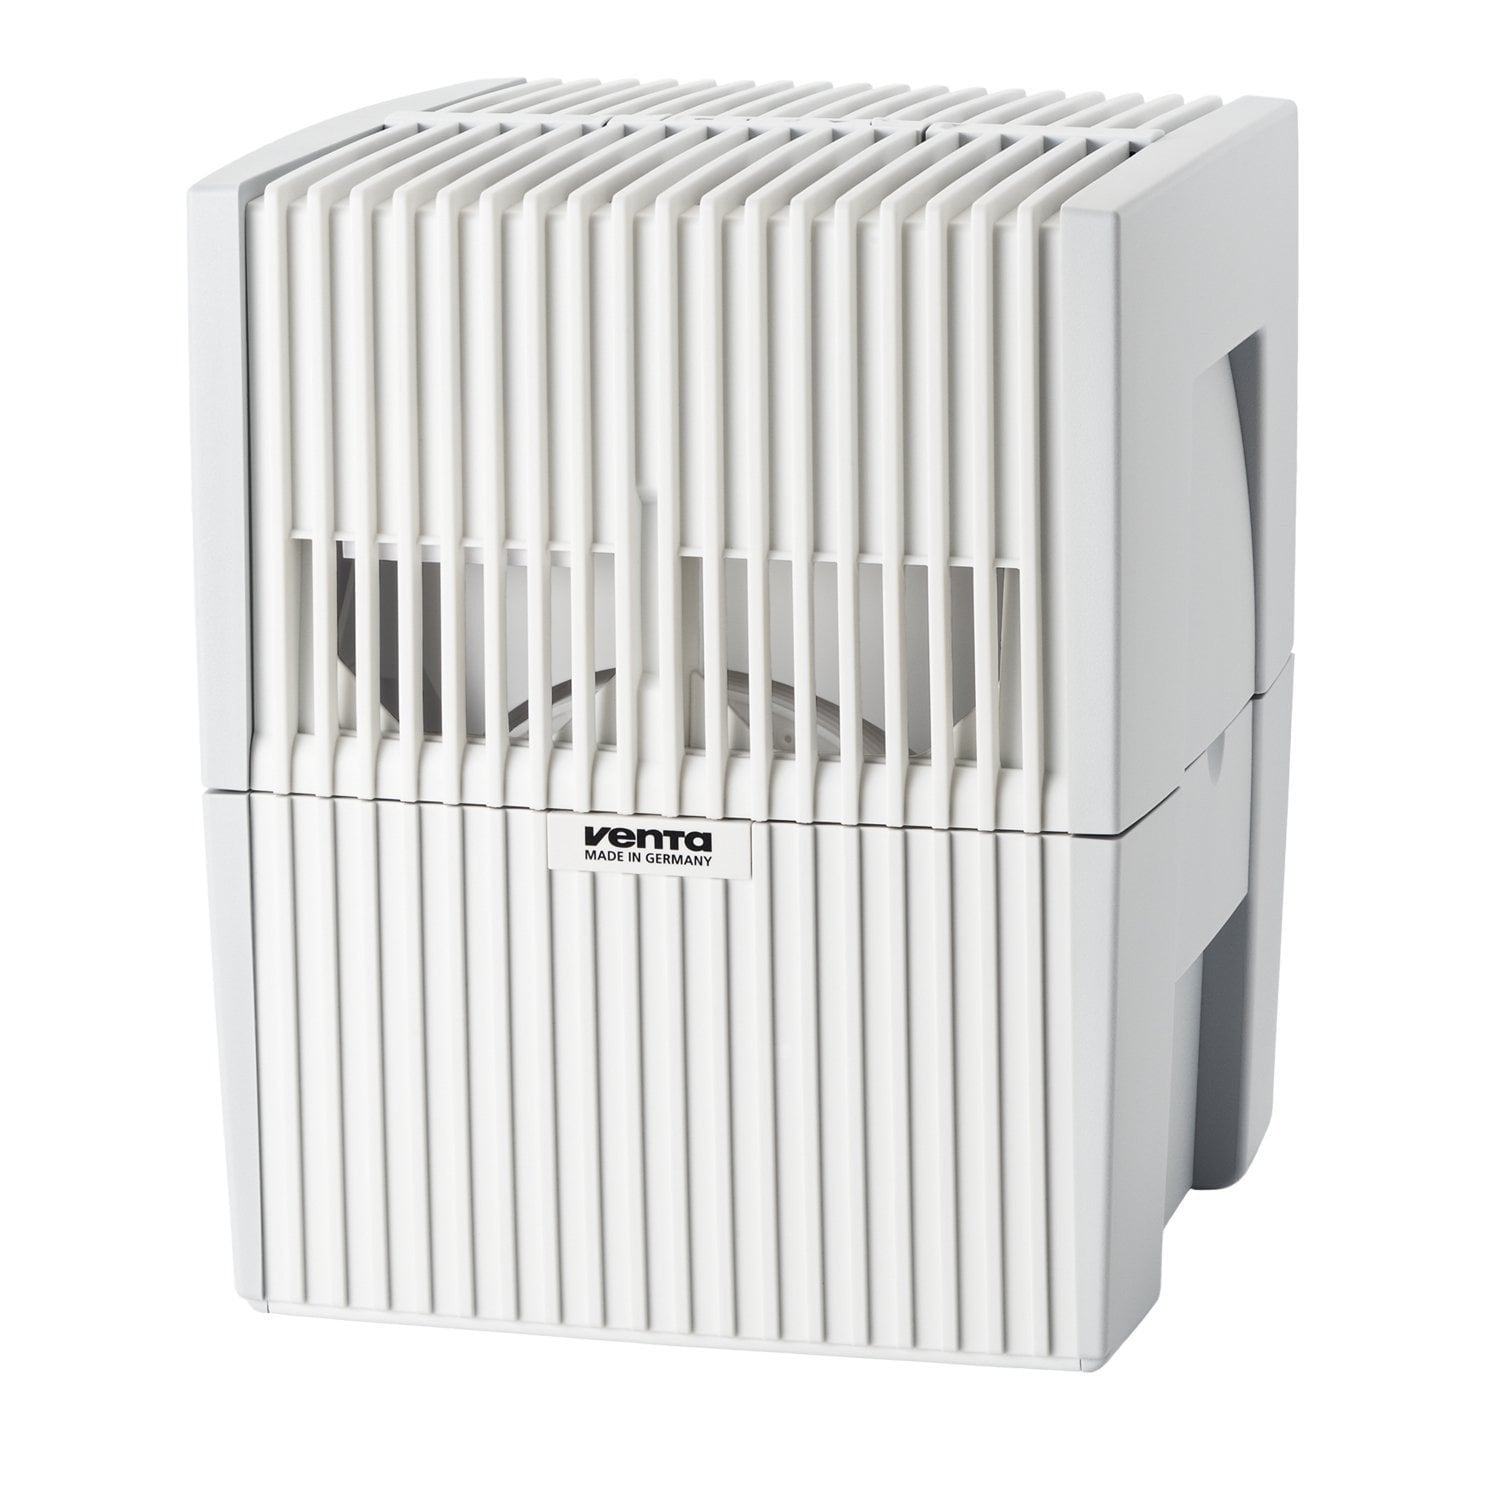 Venta Airwasher LW15 Air Purifier & Humidifier - White